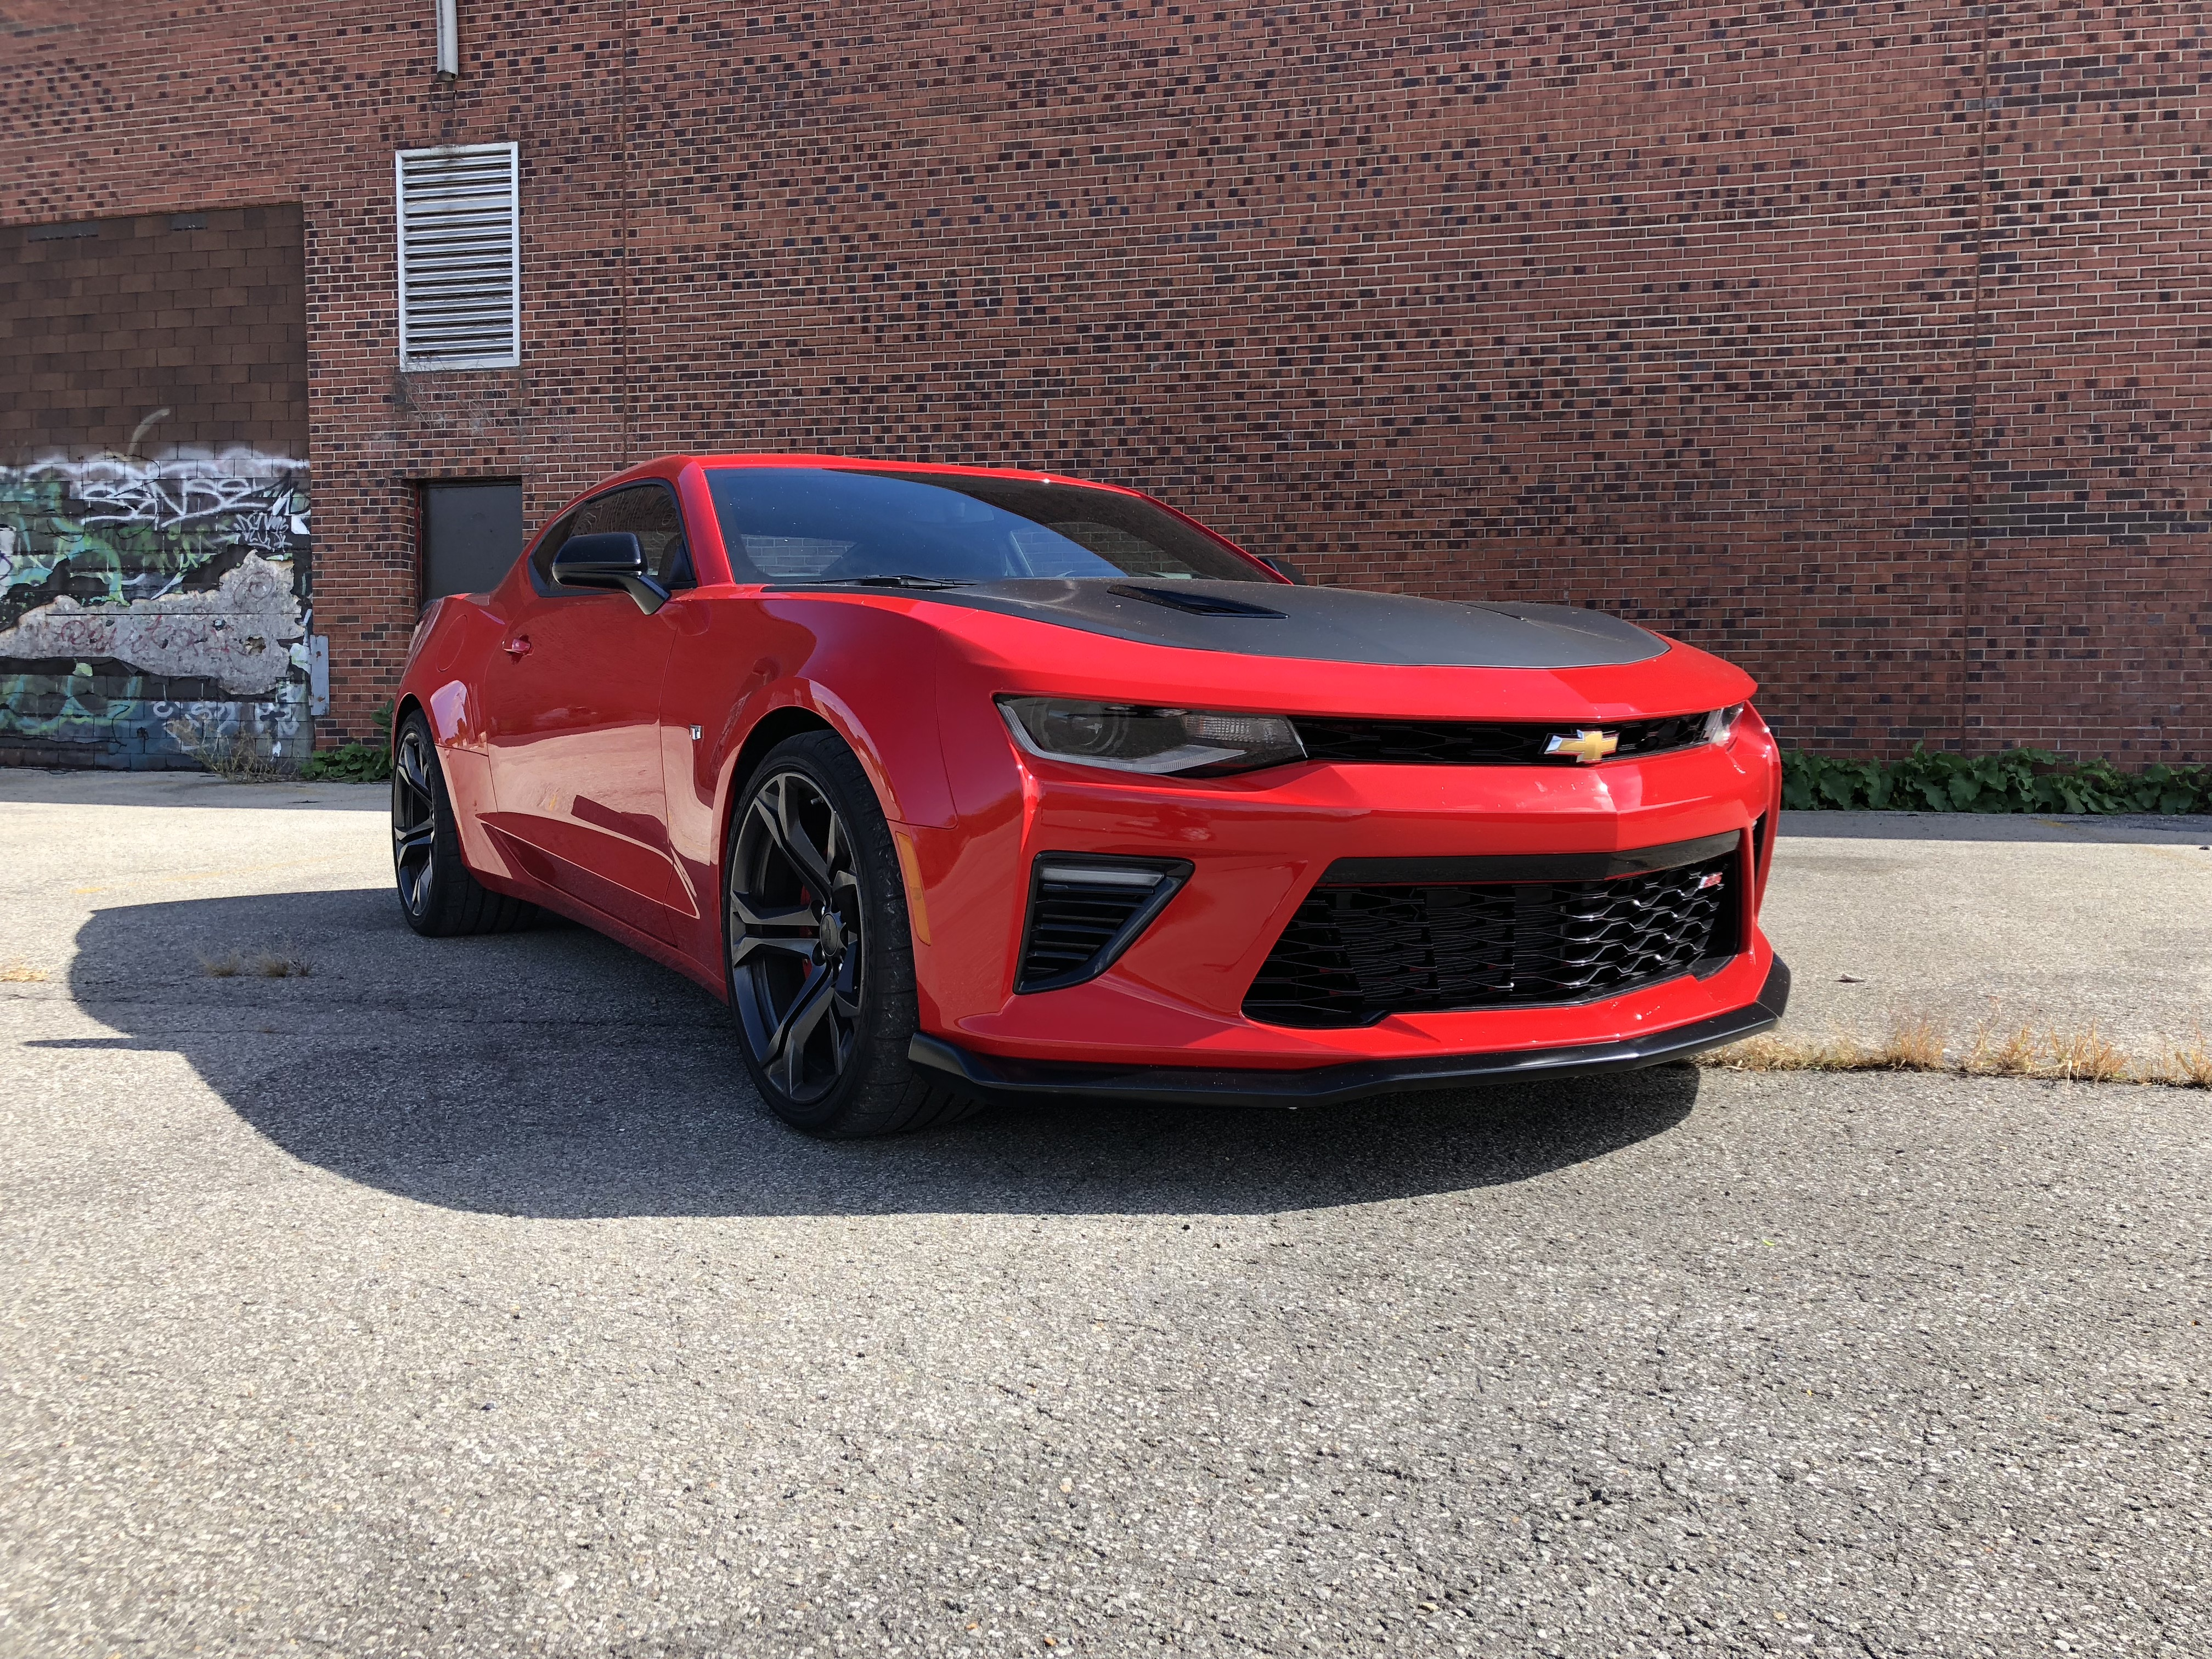 2018 Chevrolet Camaro SS 1LE 3/4 front